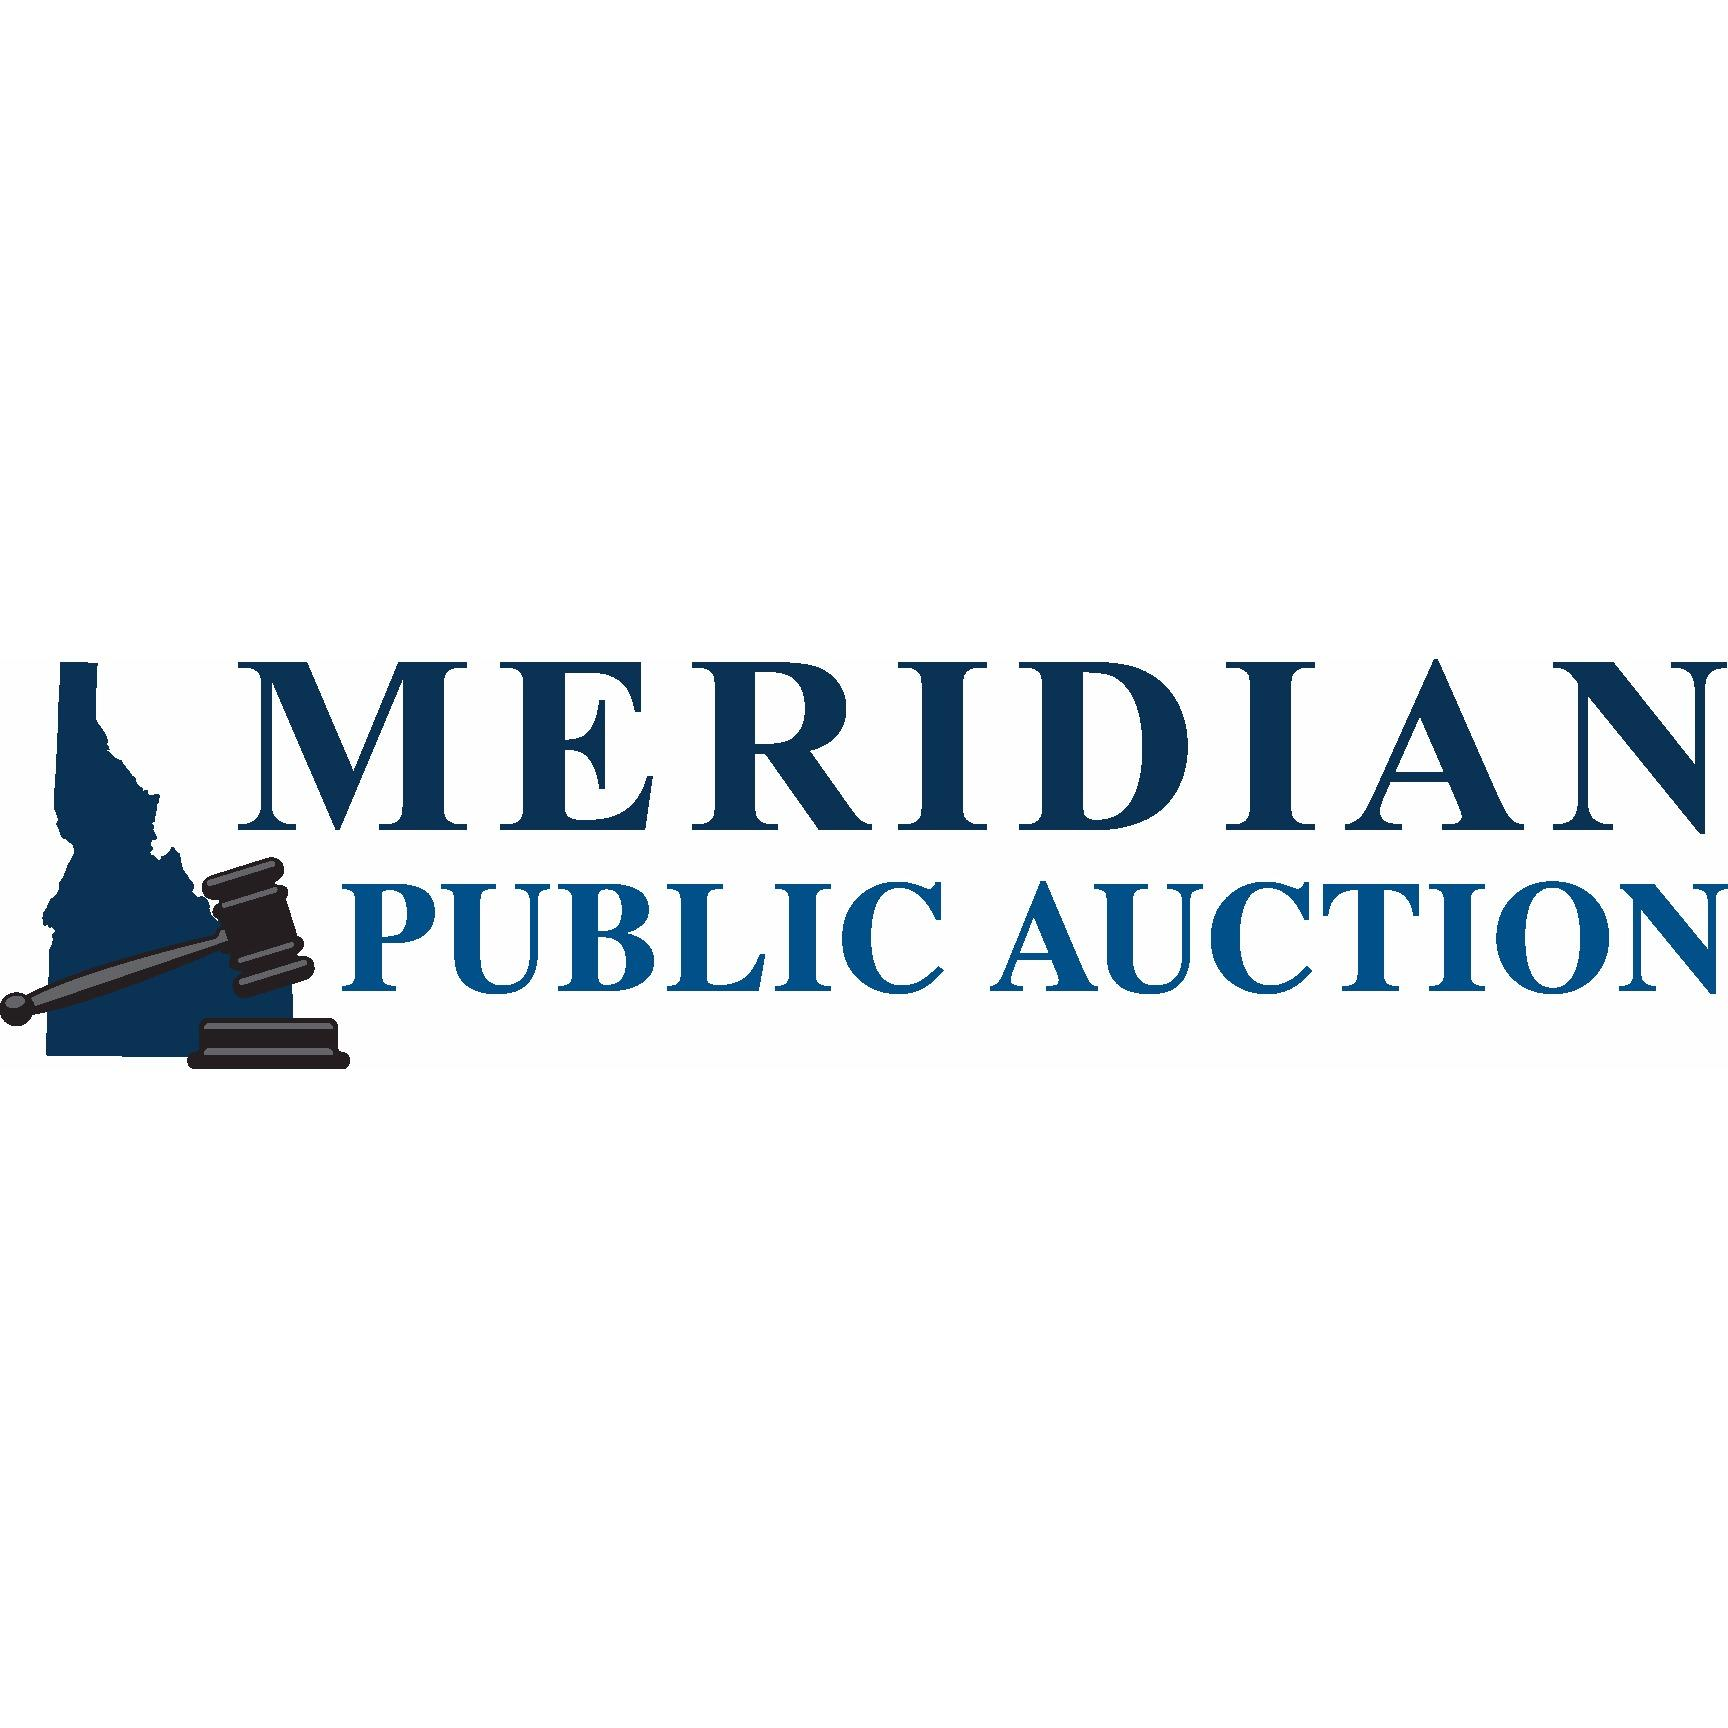 Meridian Public Auction